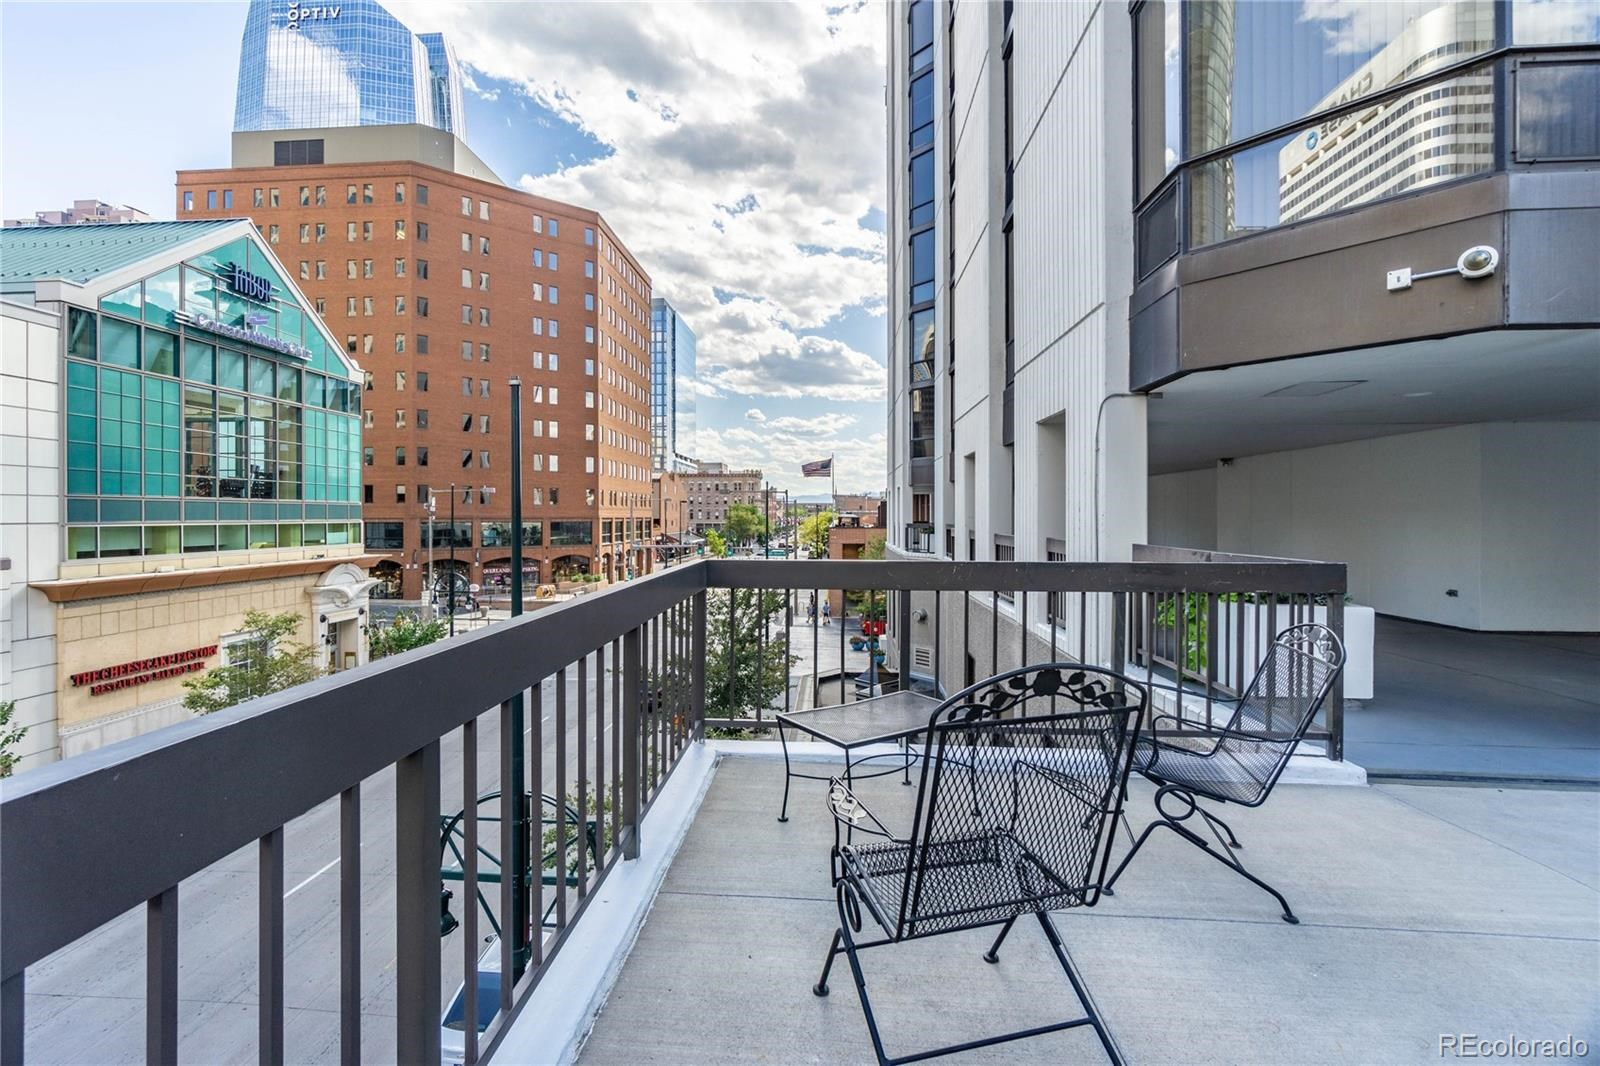 MLS# 7286229 - 1625 Larimer Street #1107, Denver, CO 80202